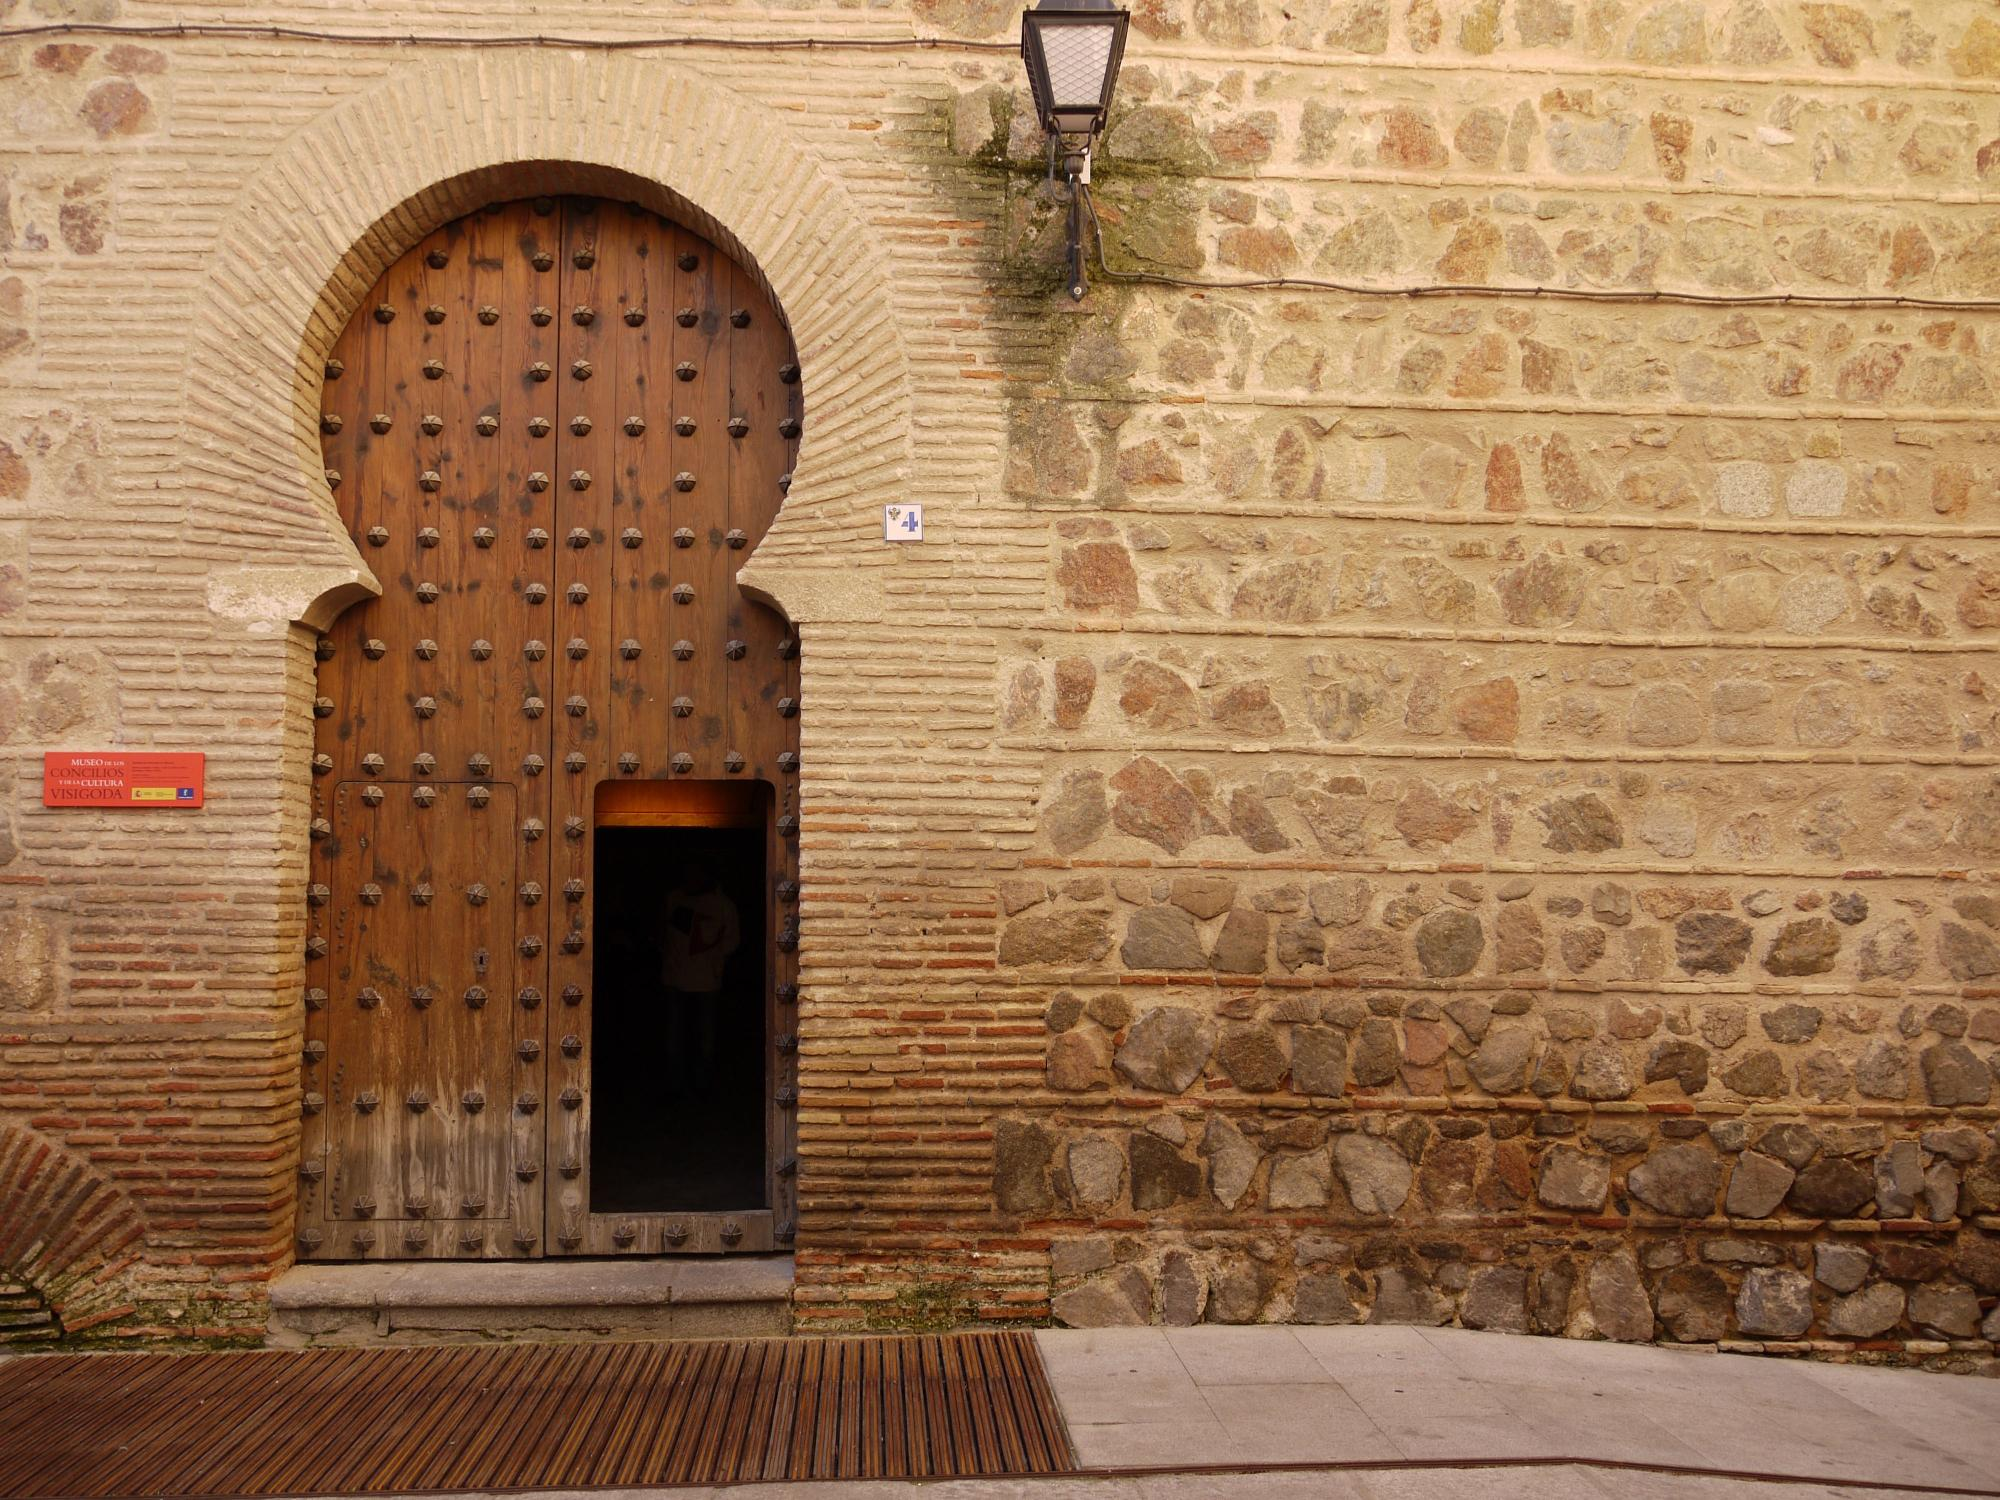 Moorish Door in Toledo